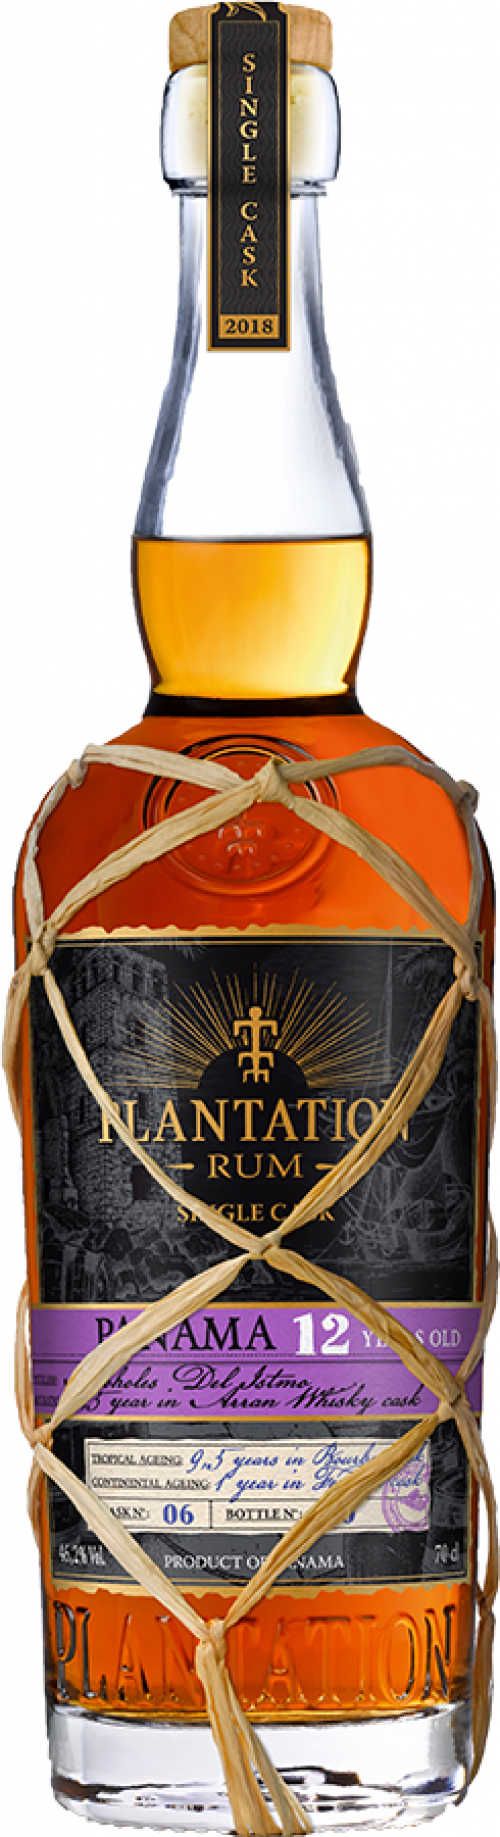 Plantation Single Cask 2018 Panama 12Yr Rum 750ml